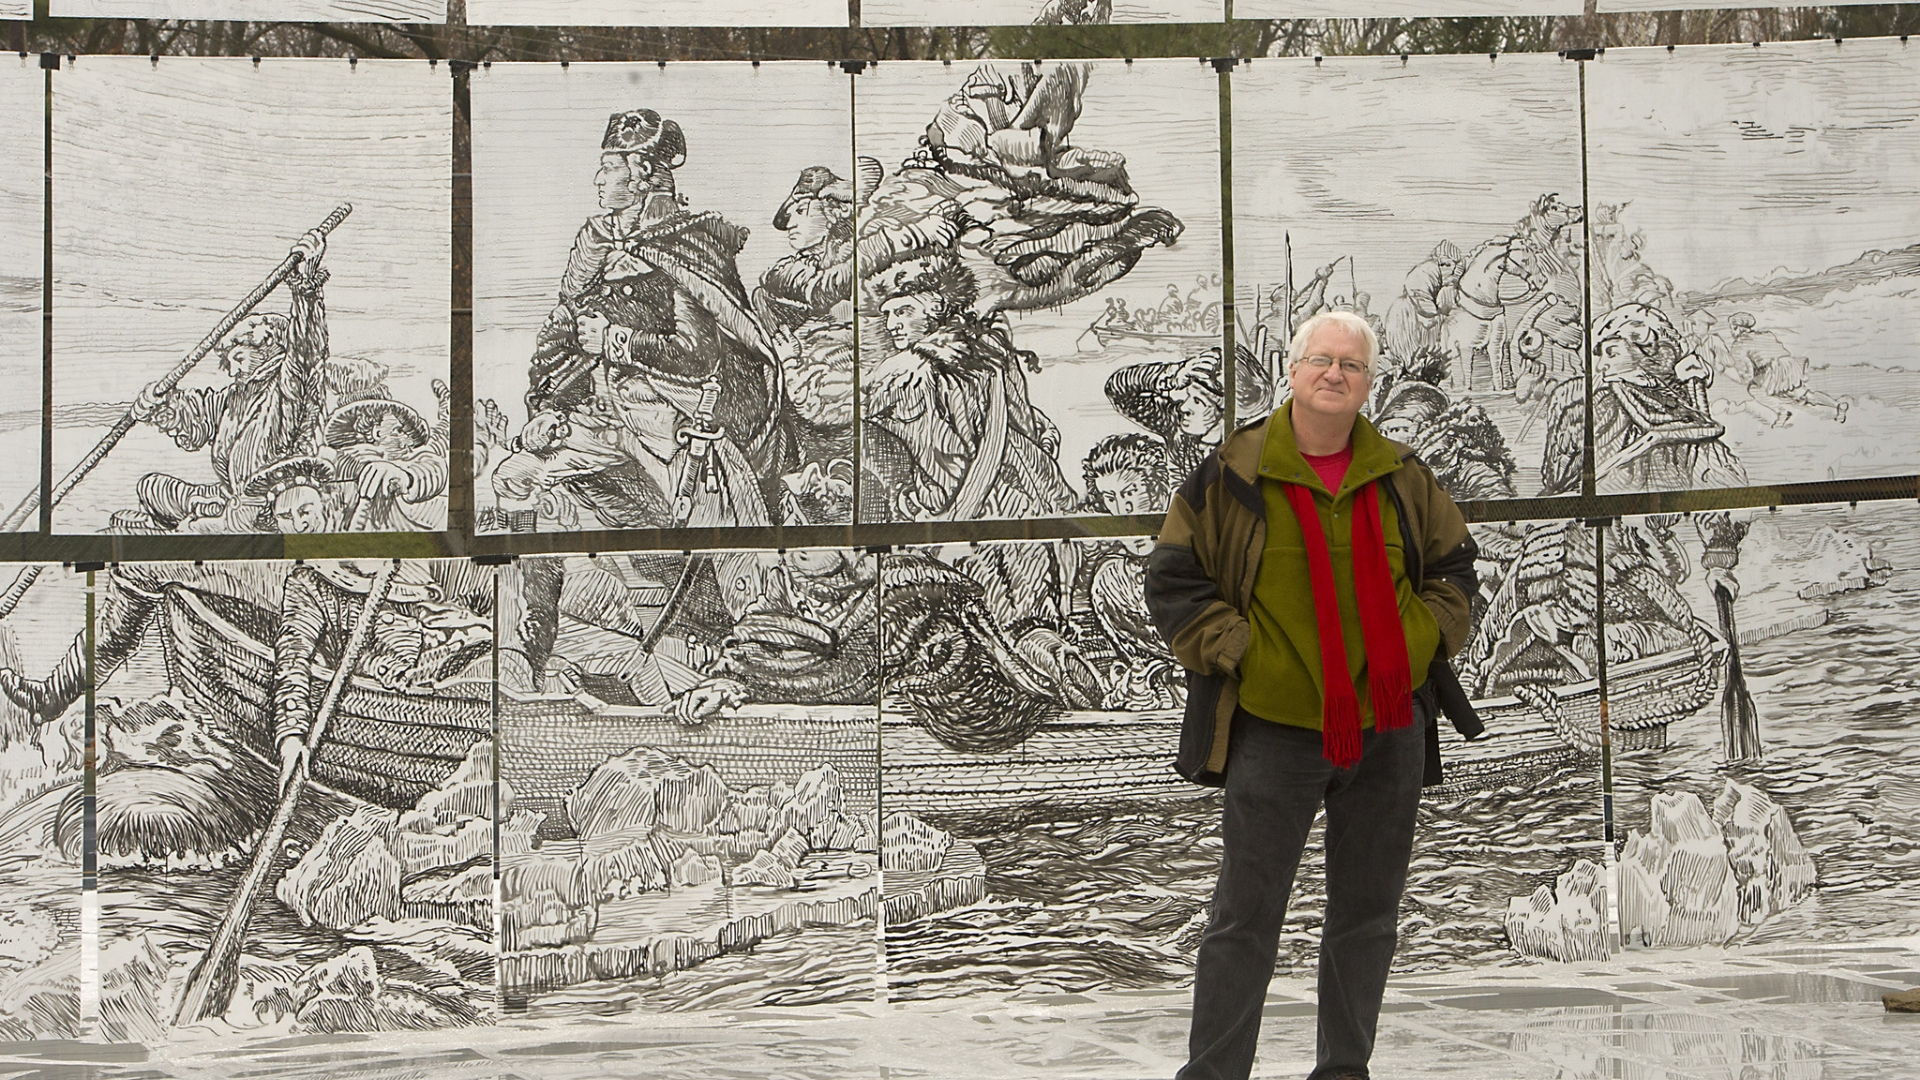 Valley Artist Remembers Washington S Crossing With Full Size